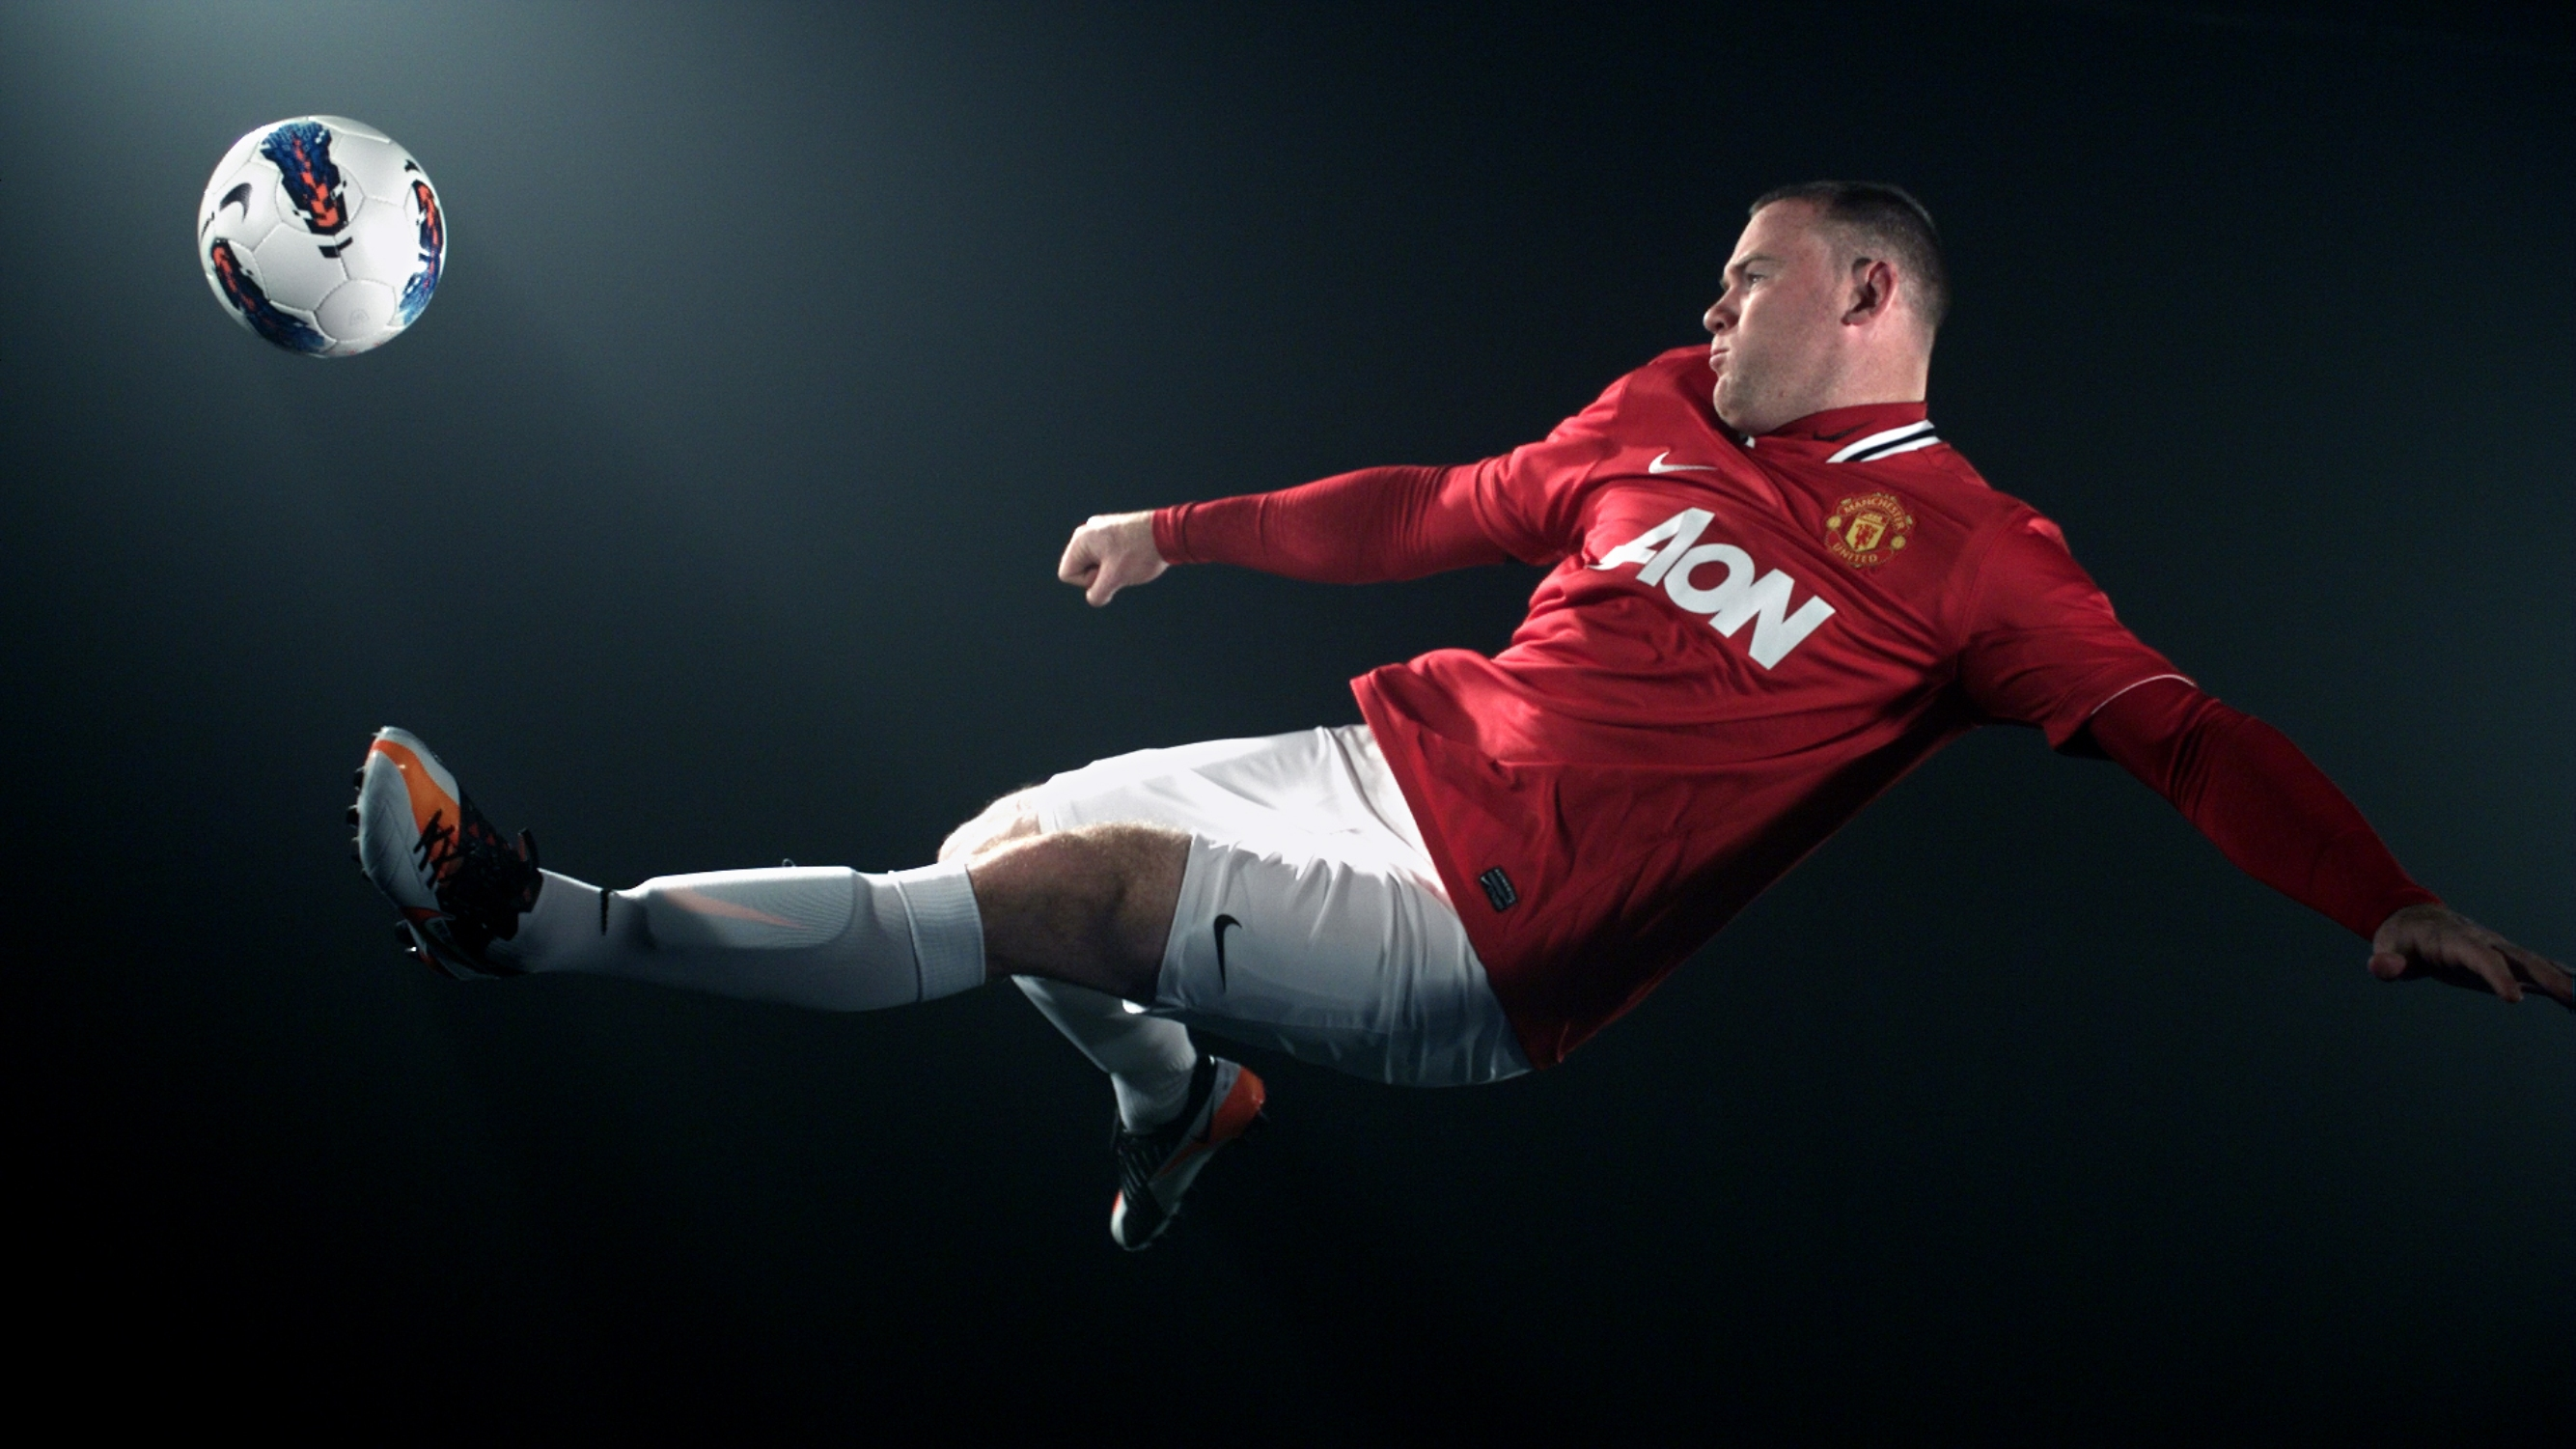 Wayne Rooney Bicycle Kick Wayne Rooney Bicycle Kick Images TheCelebrityPix